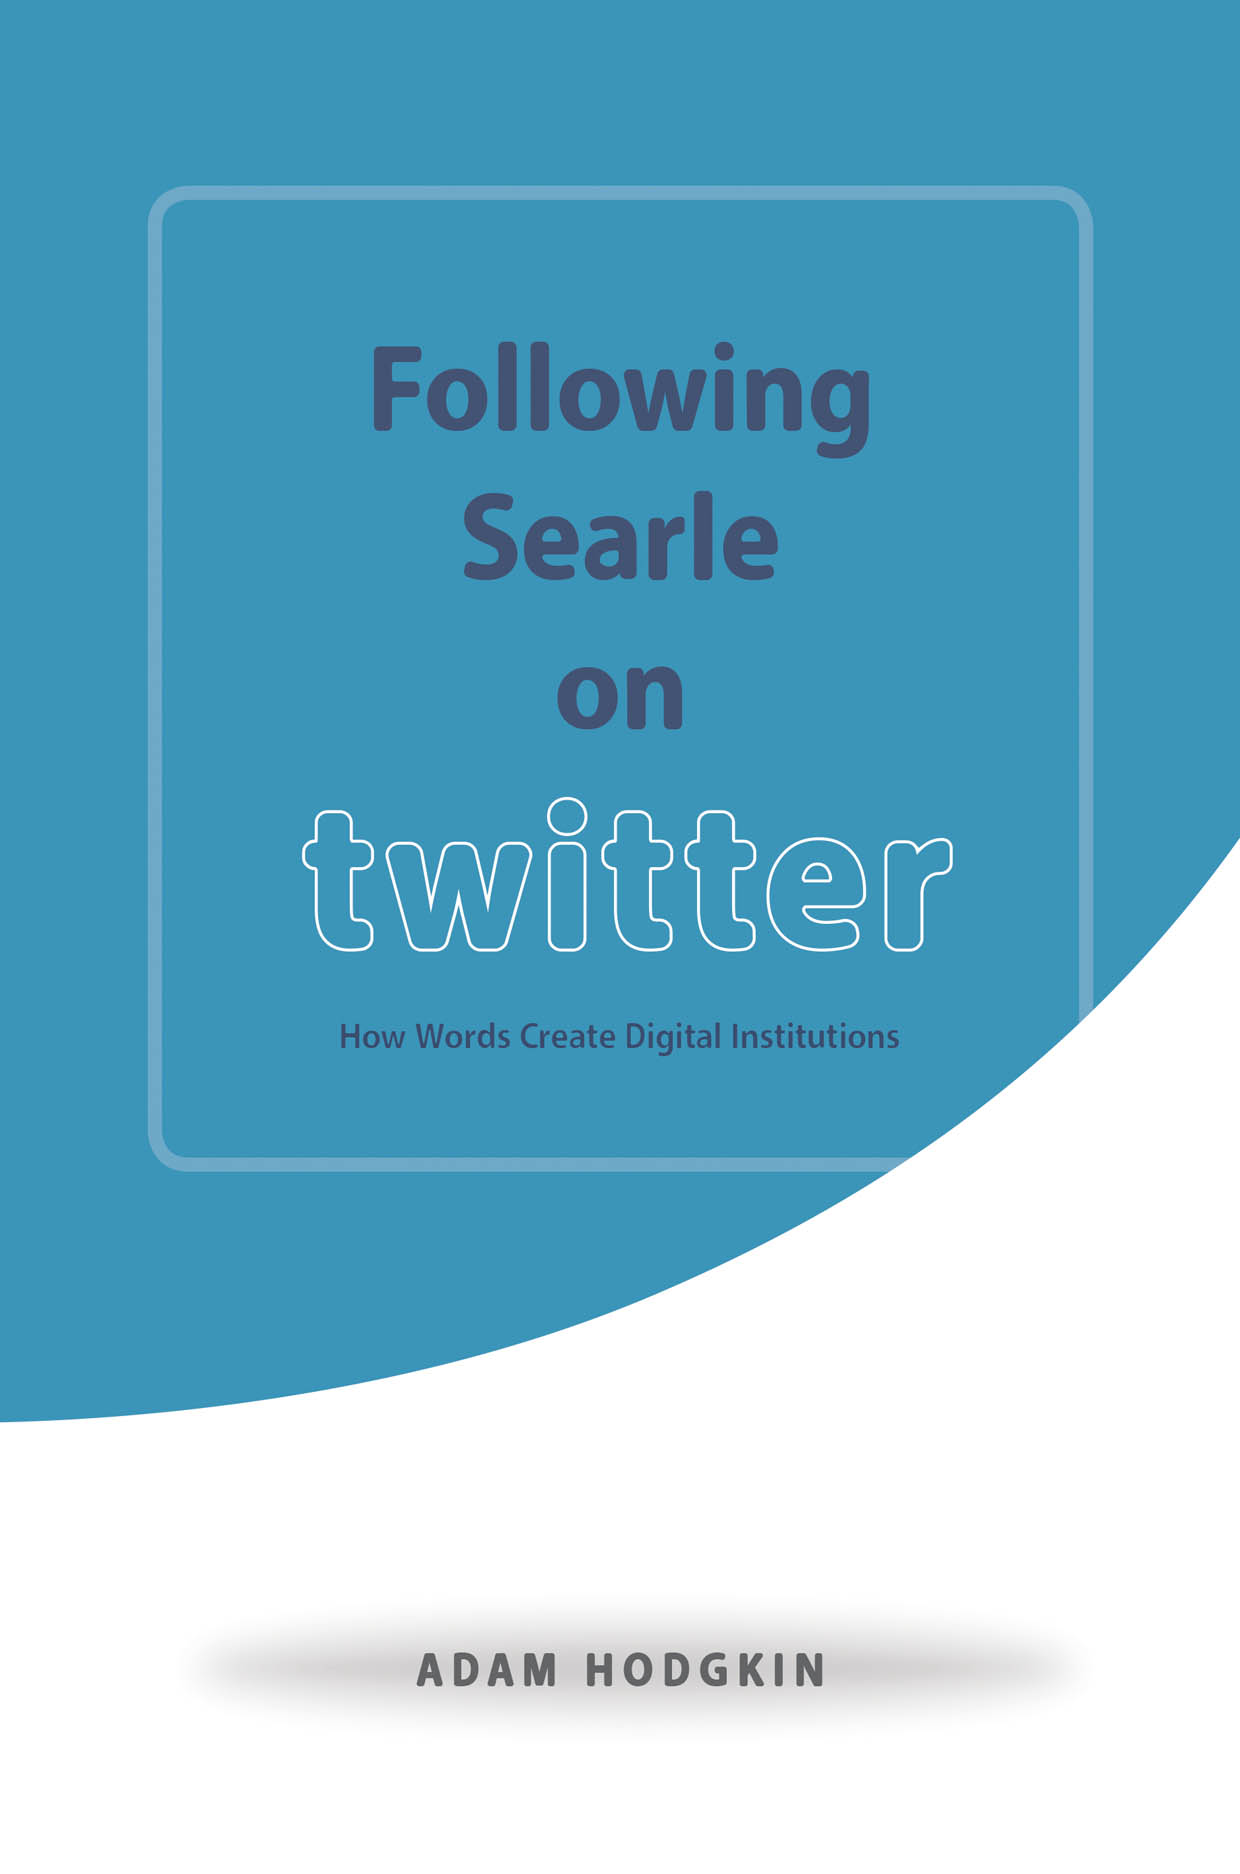 Following Searle on Twitter: How Words Create Digital Institutions